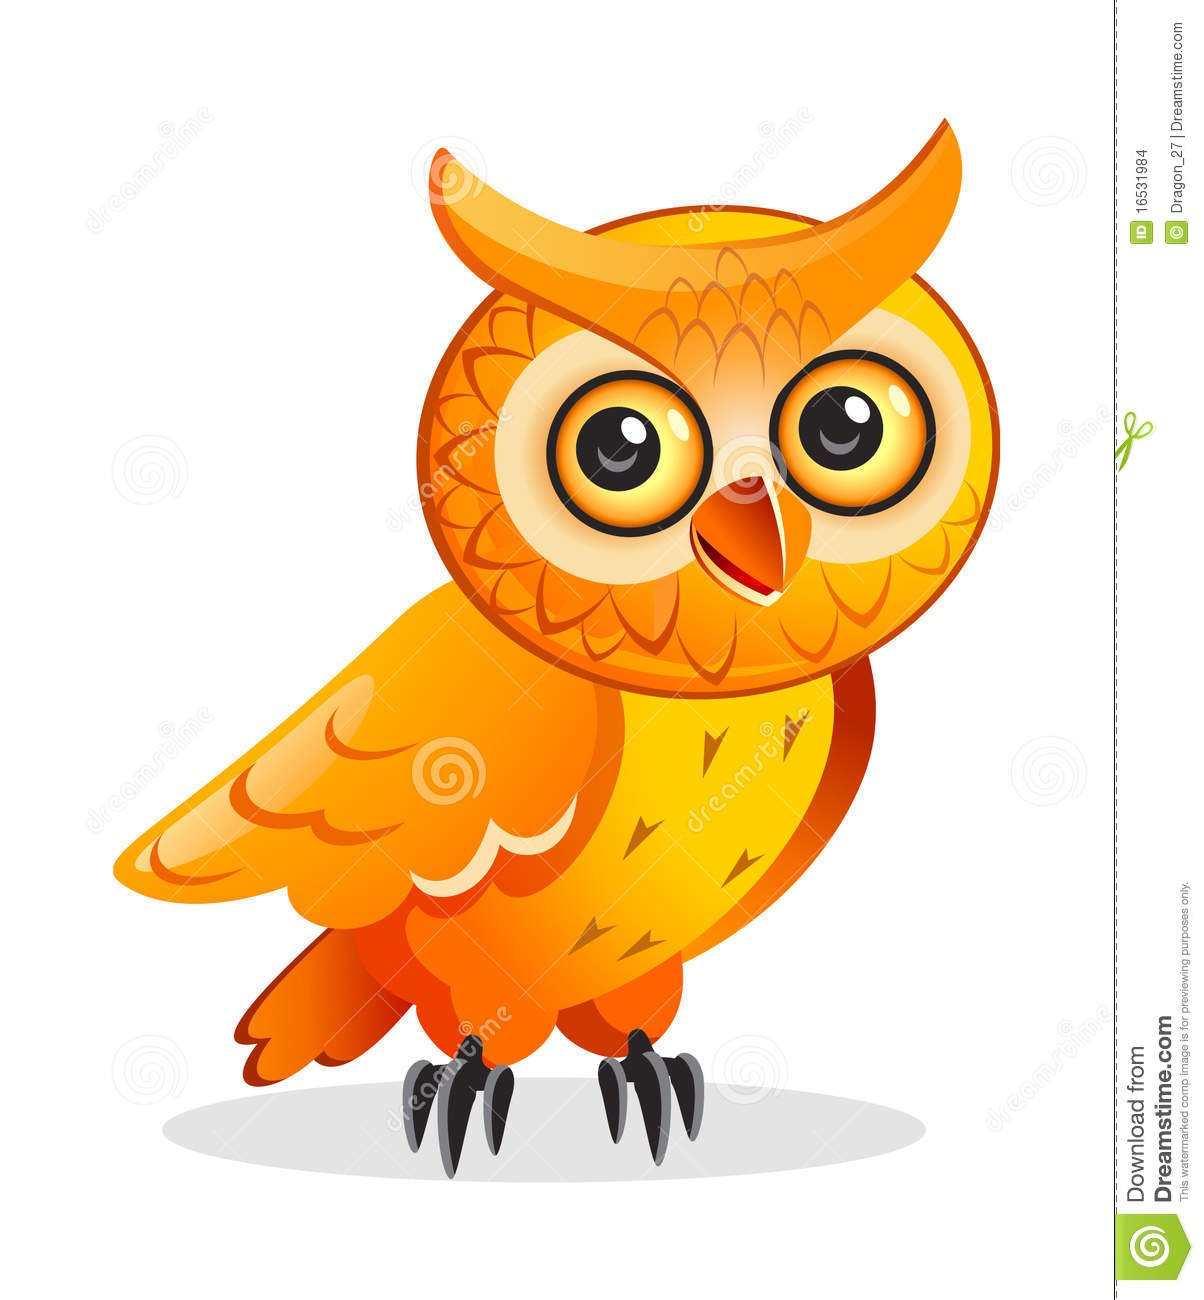 Cartoon Owl Desktop Wallpaper - WallpaperSafari